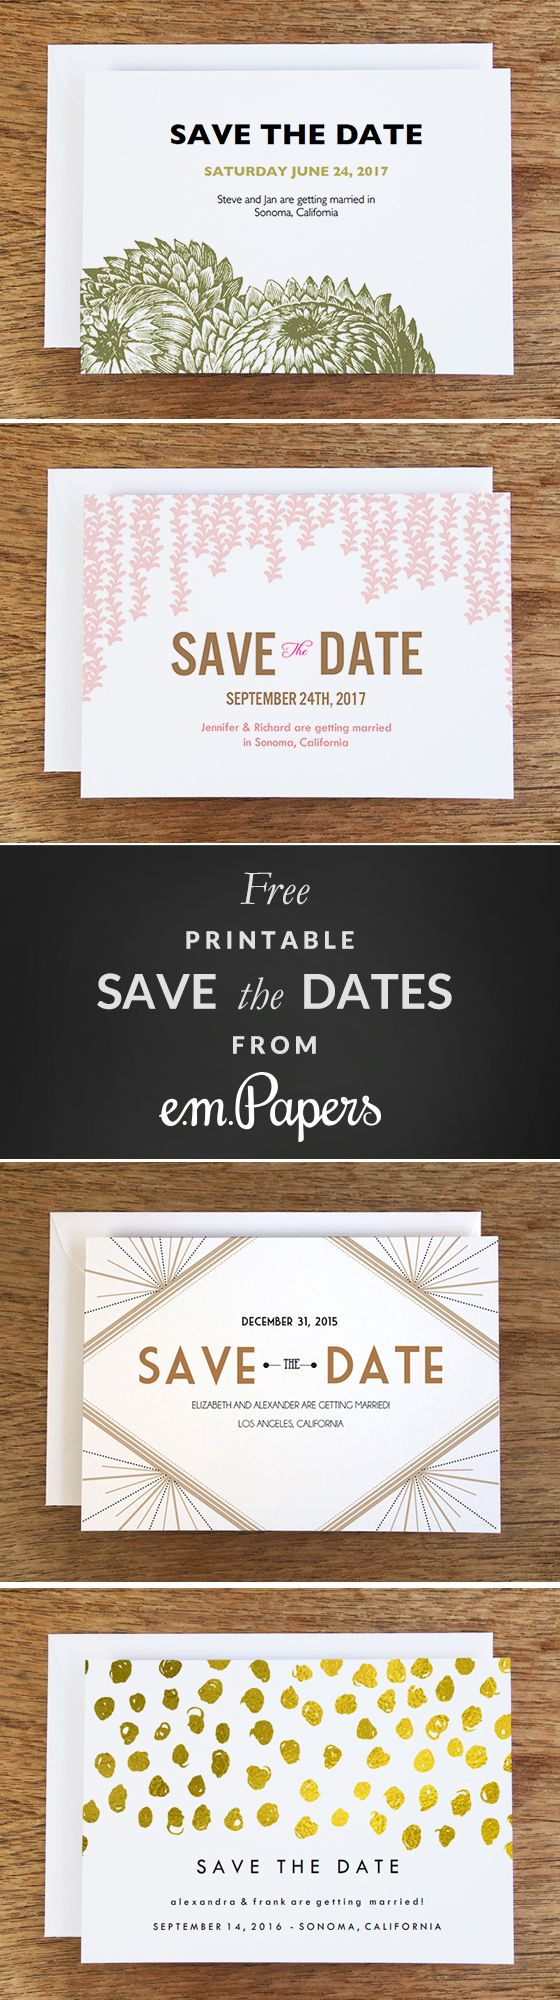 Best 25 save the date templates ideas on pinterest save the free save the date templates pronofoot35fo Images